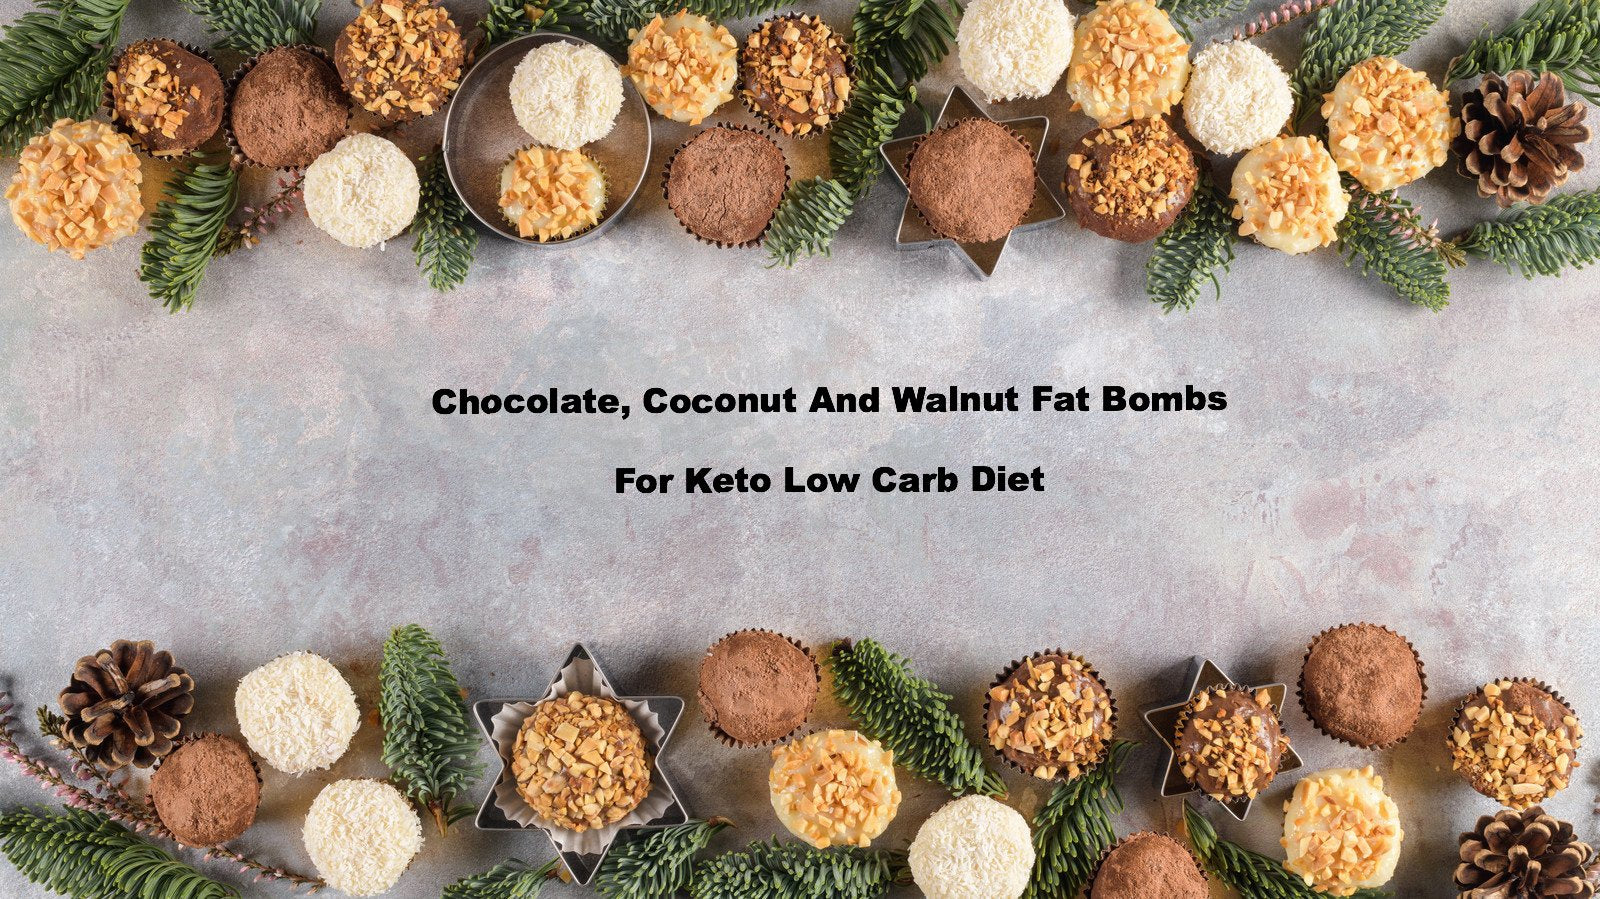 Buy Chocolate, Coconut and Walnut Fat Bombs